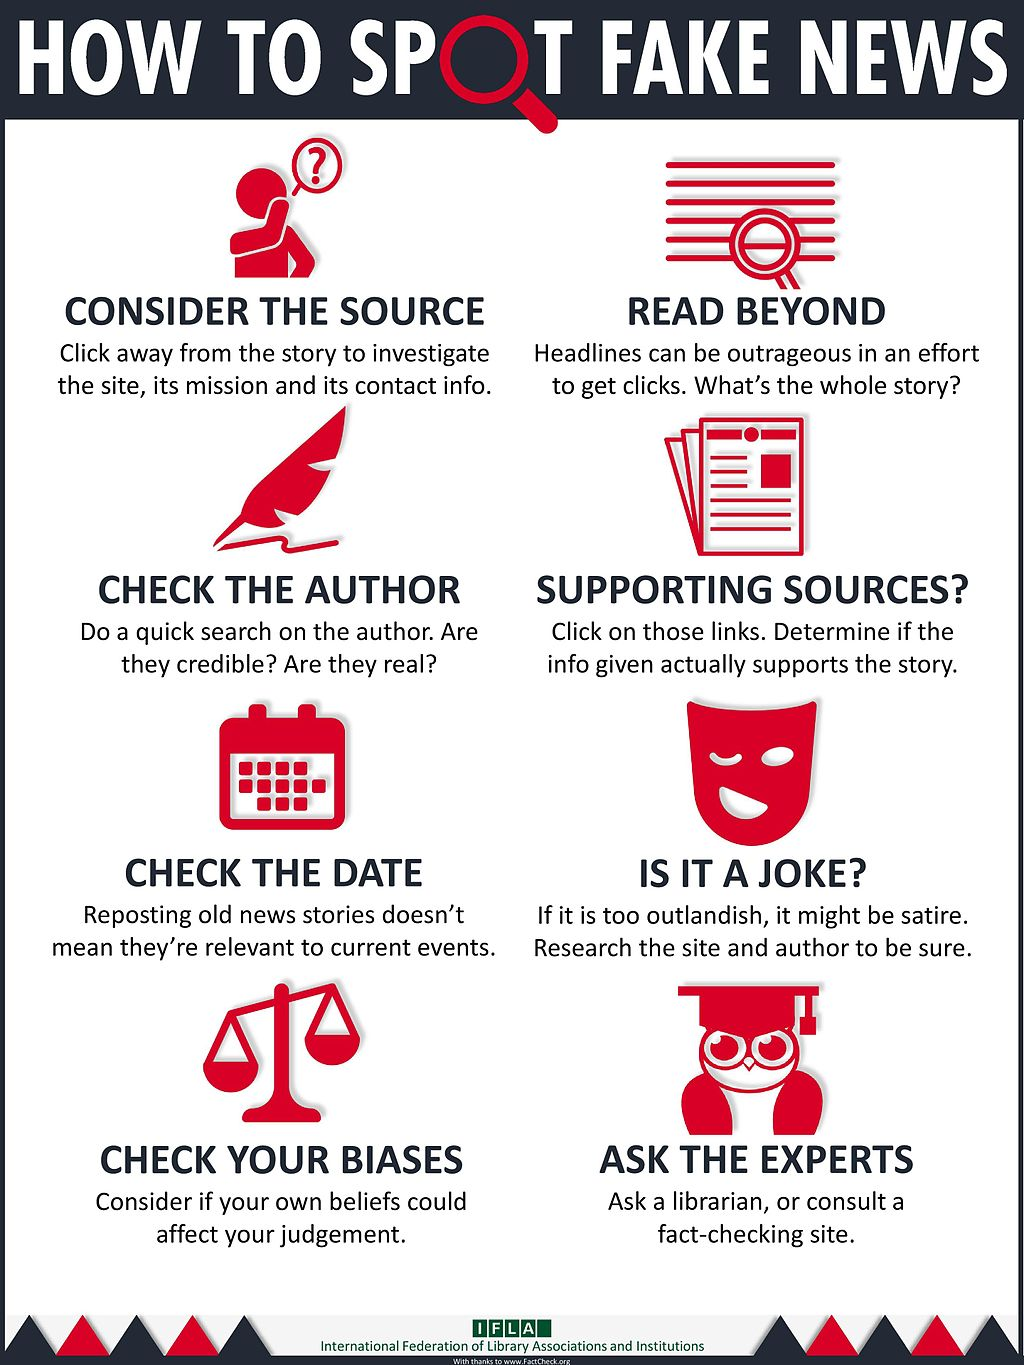 How to Spot Fake News; Consider the Source, Read Beyond, Check the Author, Supporting Sources?, check the Date, Is it a Joke?, Check your Biases, Ask the Experts